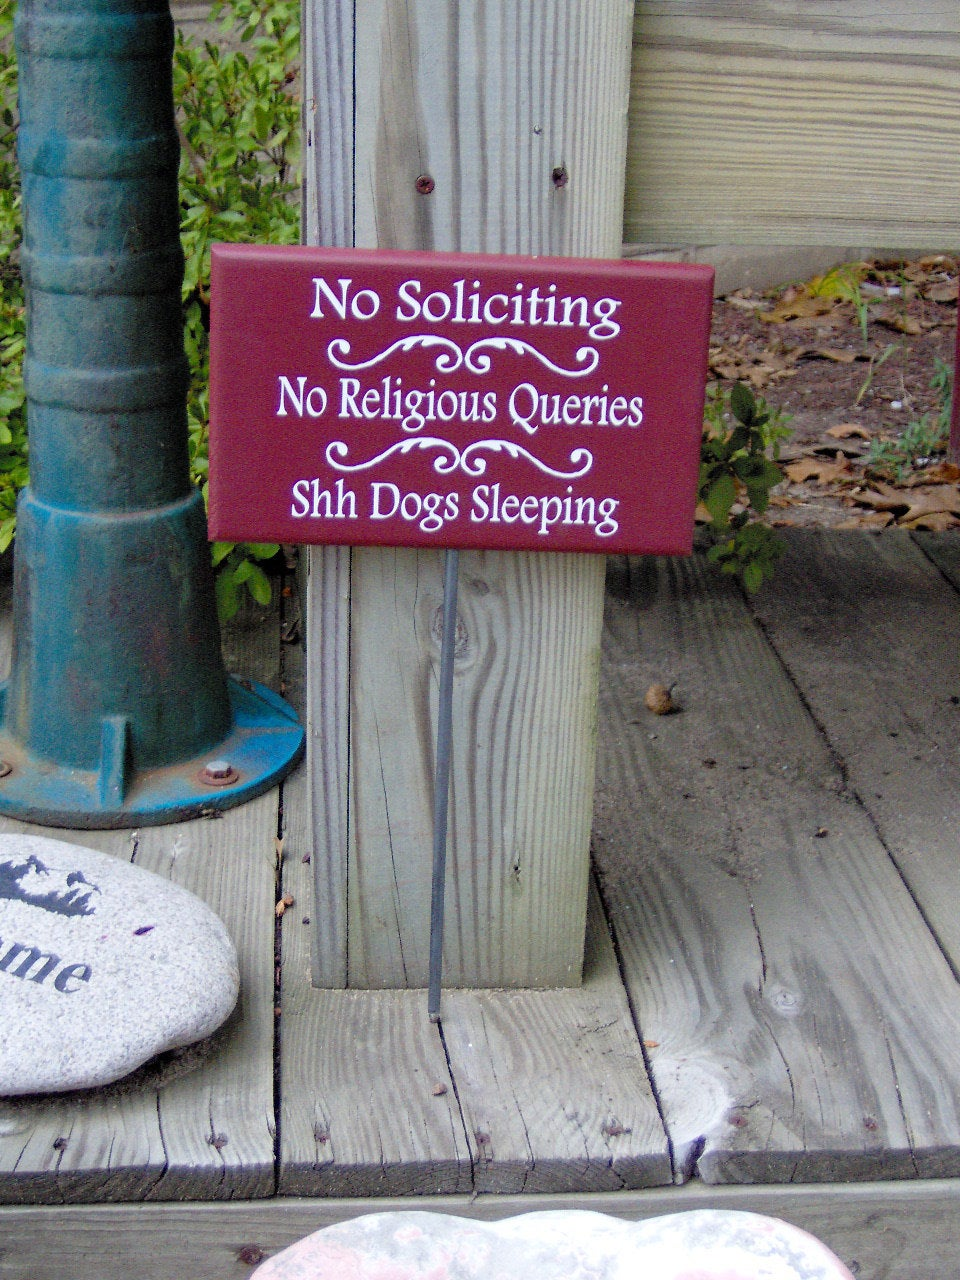 No Soliciting No Religious Queries Shh Dogs Sleeping Wood Vinyl Yard Stake Sign Country Farmhouse Red Outdoor House Sign Pet Supplies - Heartfelt Giver